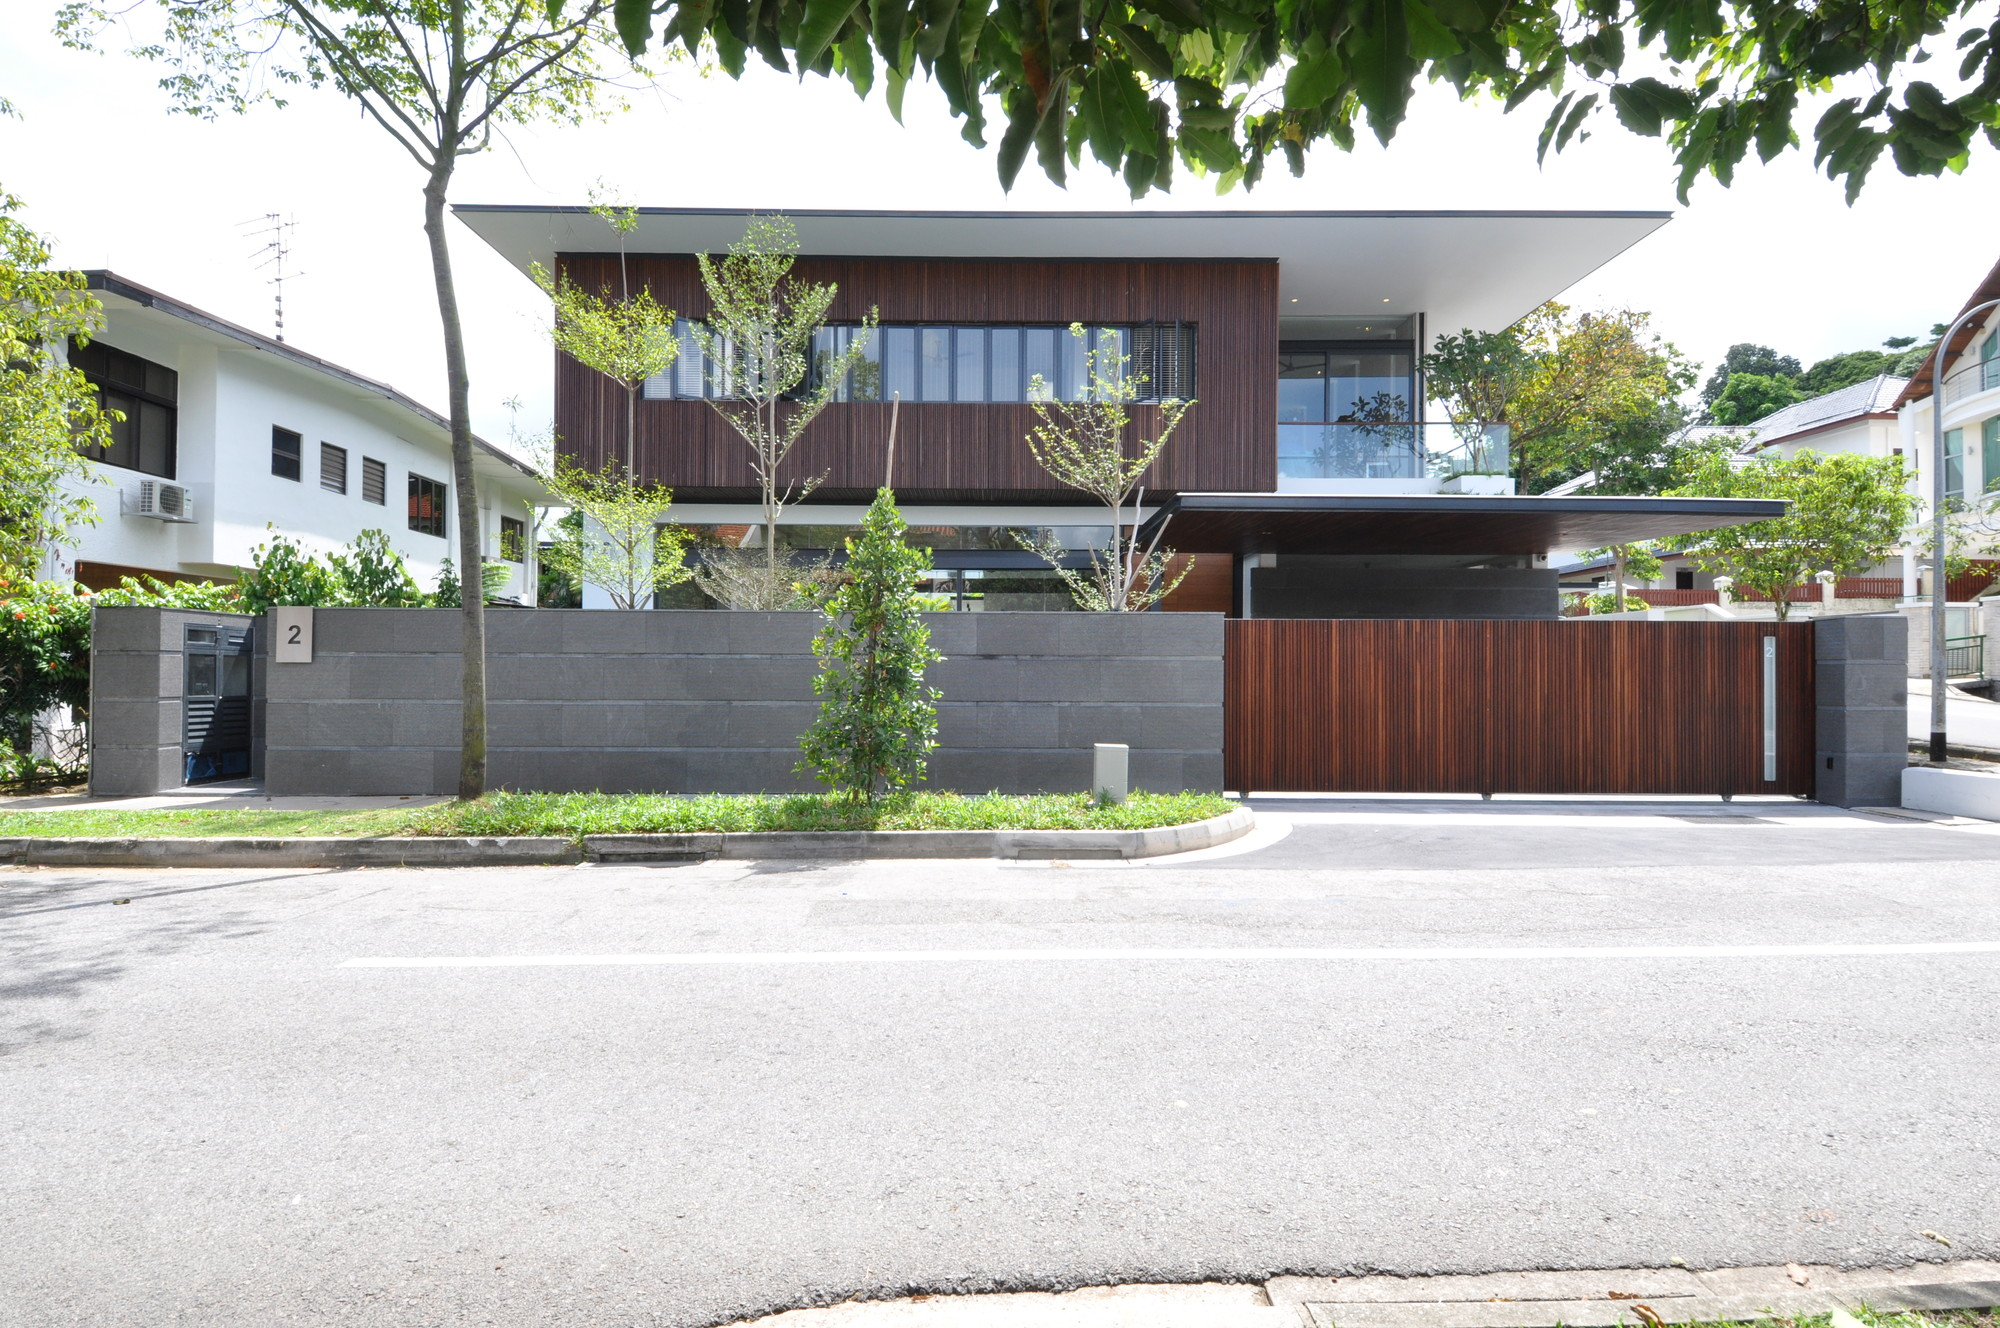 Sunset Terrace House / a_collective, Courtesy of a_collective